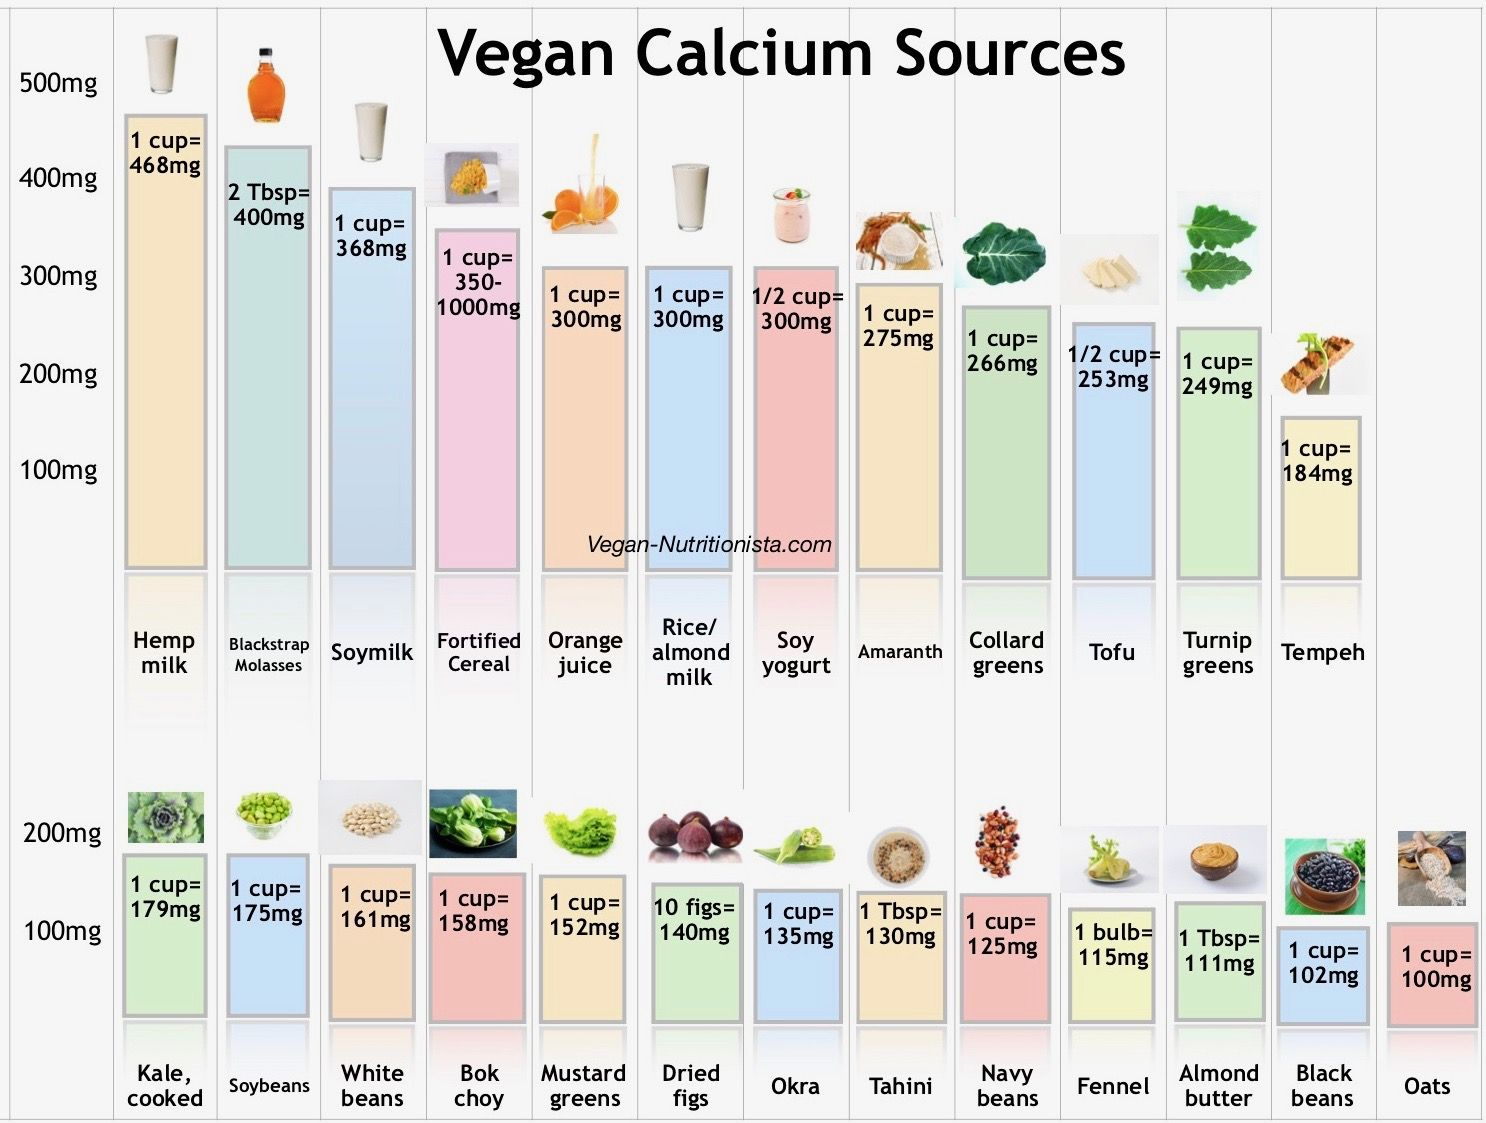 Looking For Vegan Calcium Sources This Chart Shows More Than 20 Options Of Plant Based Foods That All H Vegan Calcium Vegan Calcium Sources Foods With Calcium